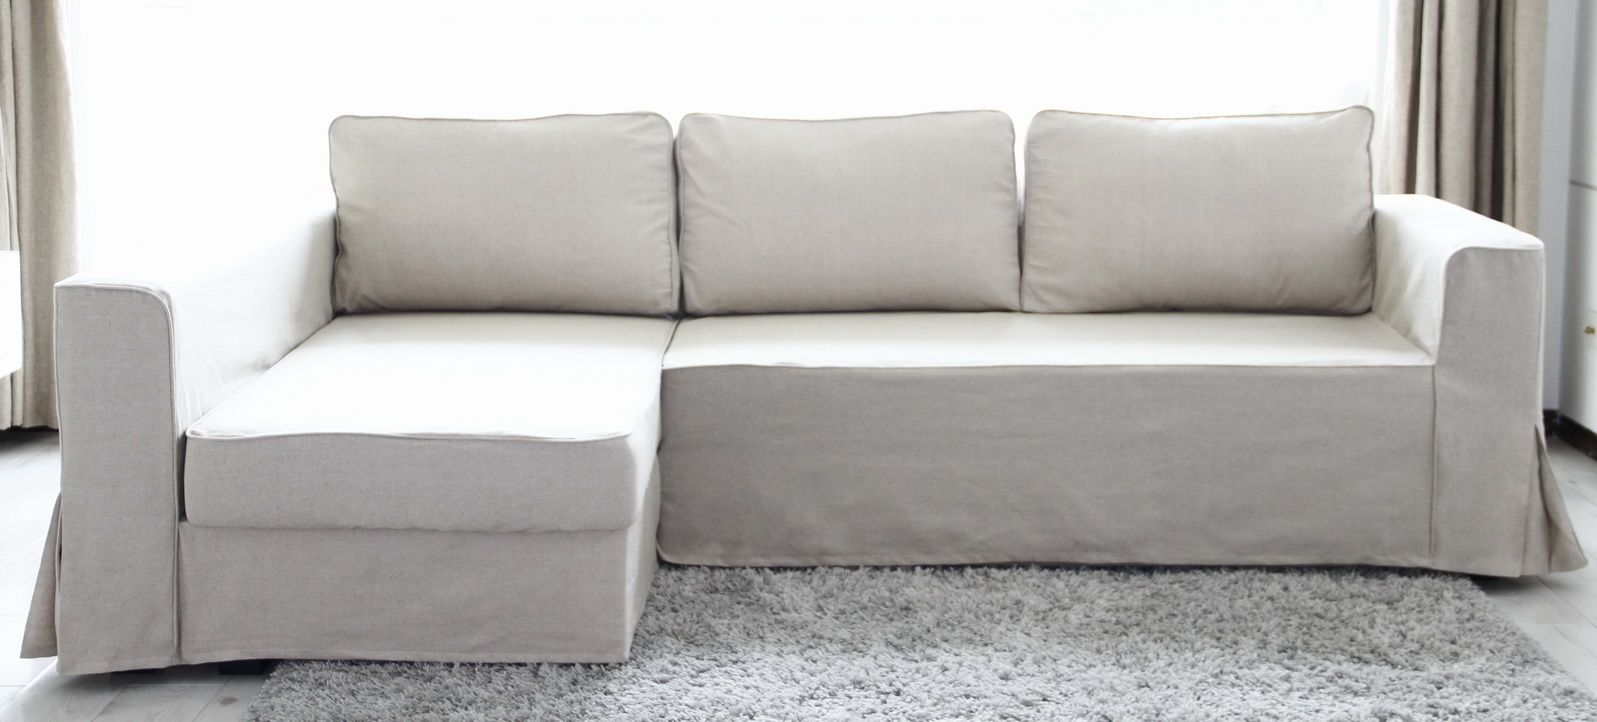 Loose Fit Linen Manstad Sofa Slipcovers Now Available Pinterest Rh Com